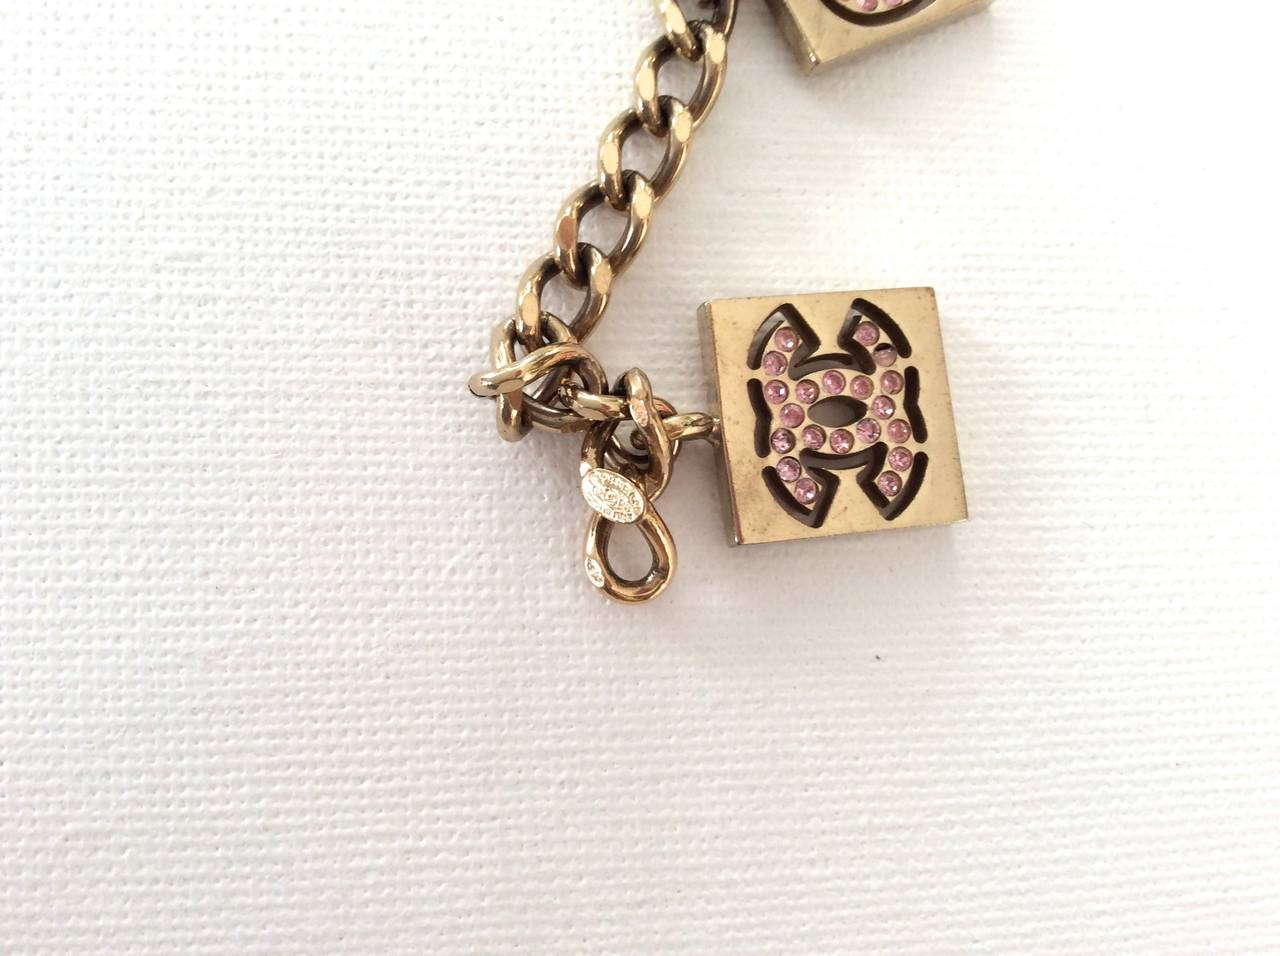 Vintage Chanel Gold Tone with Pink Rhinestone Charm Bracelet In Excellent Condition For Sale In Boca Raton, FL